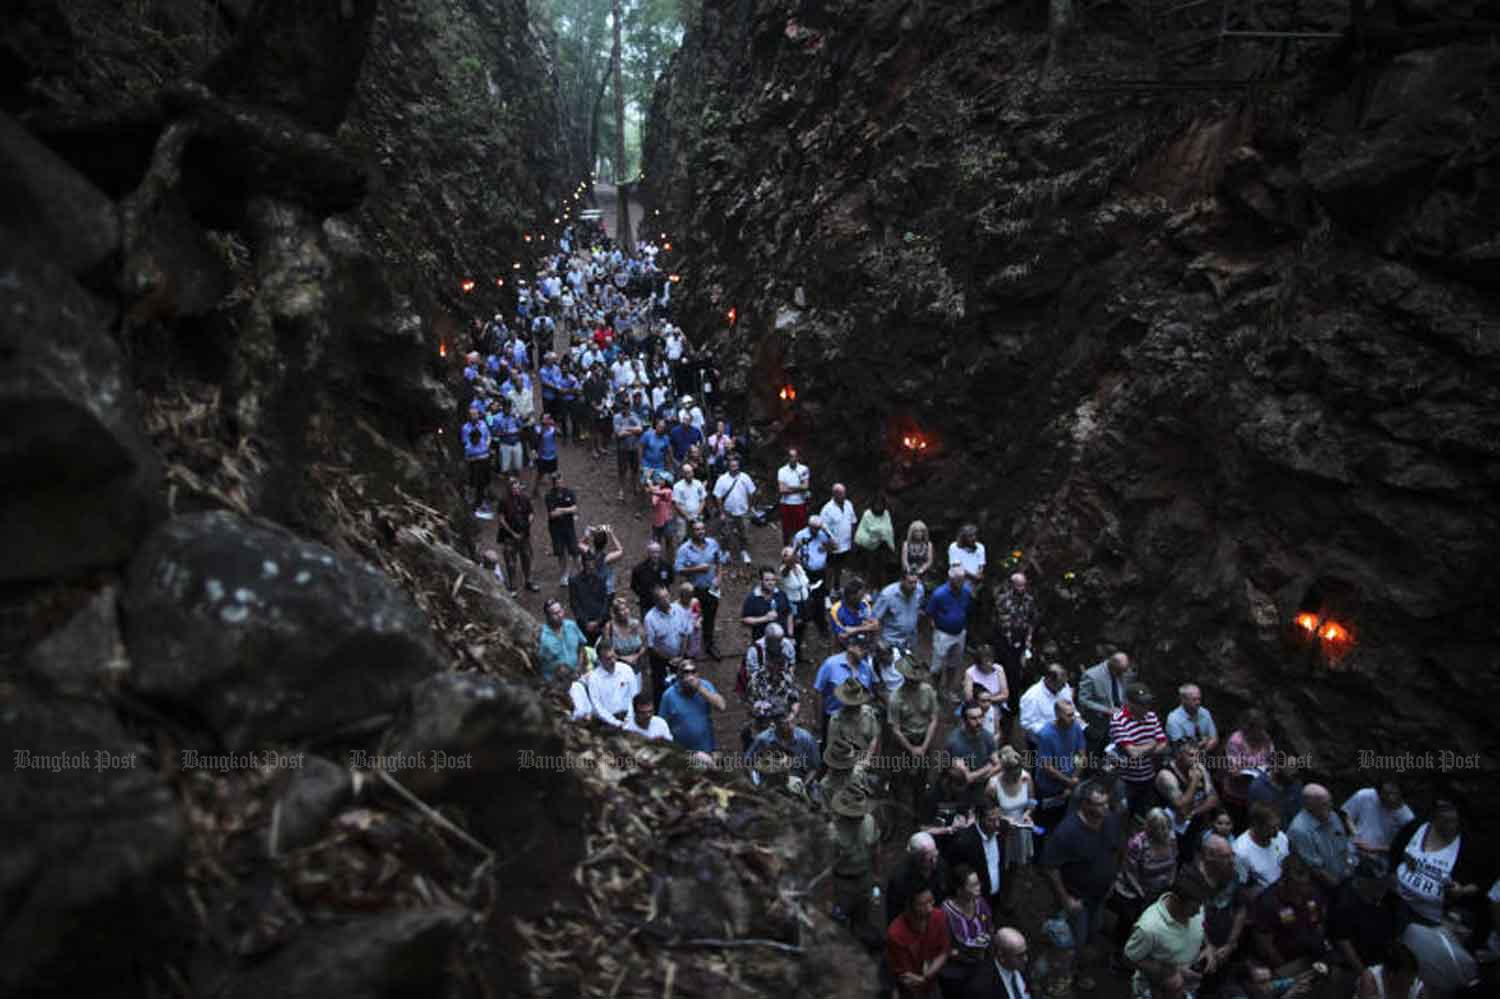 A file photo of people gathering at Chong Khao Khad in Kanchanaburi on April 25, 2015 on Anzac Day to commemorate Australian and New Zealand prisoners of war who died building the Death Railway linking Thailand and Burma during the World War II.